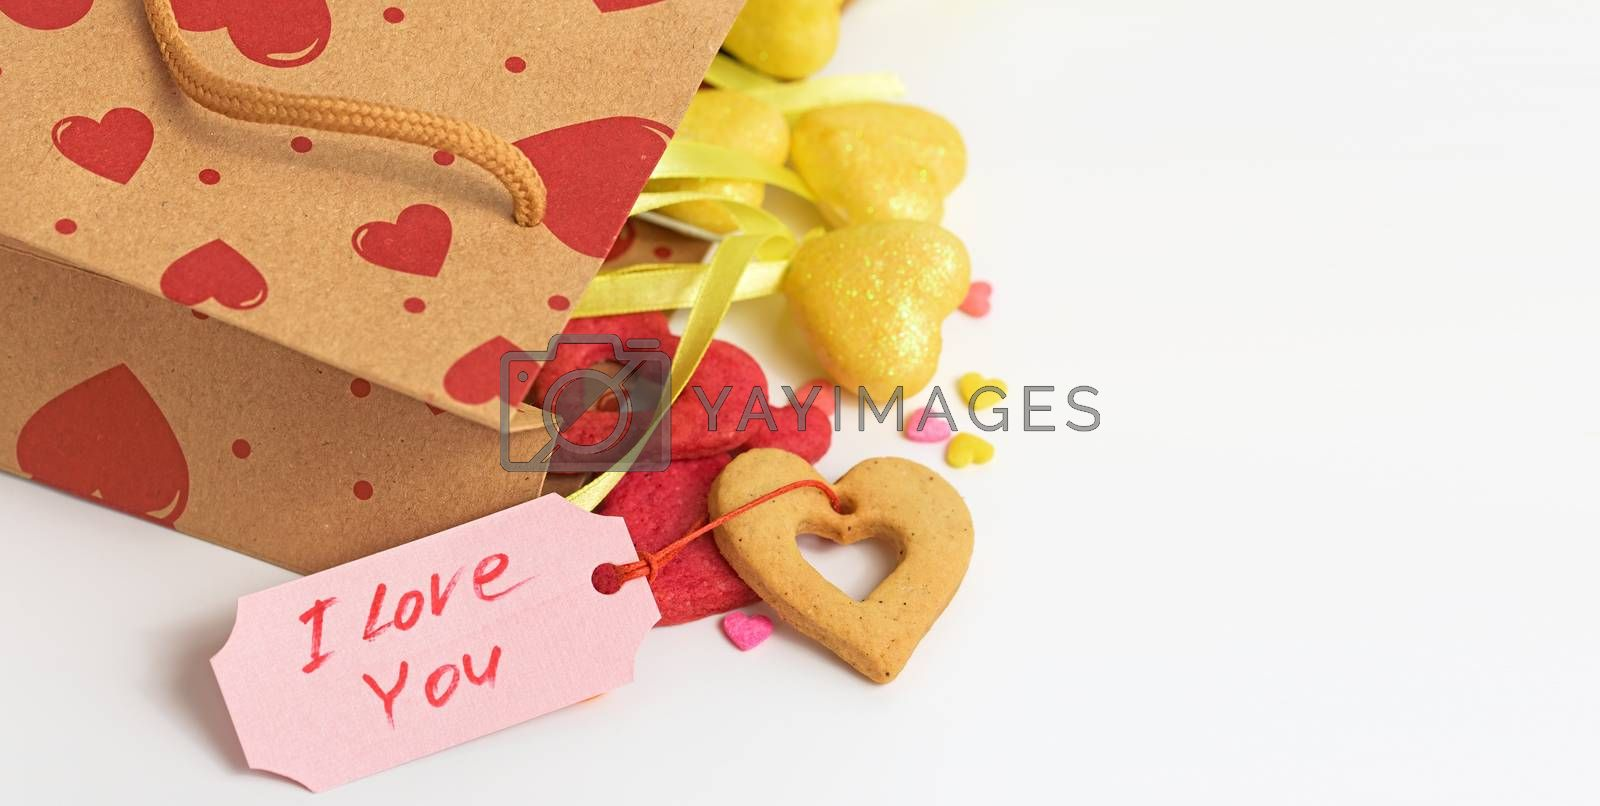 Valentines Day. I love you. Holidays card with copy space.